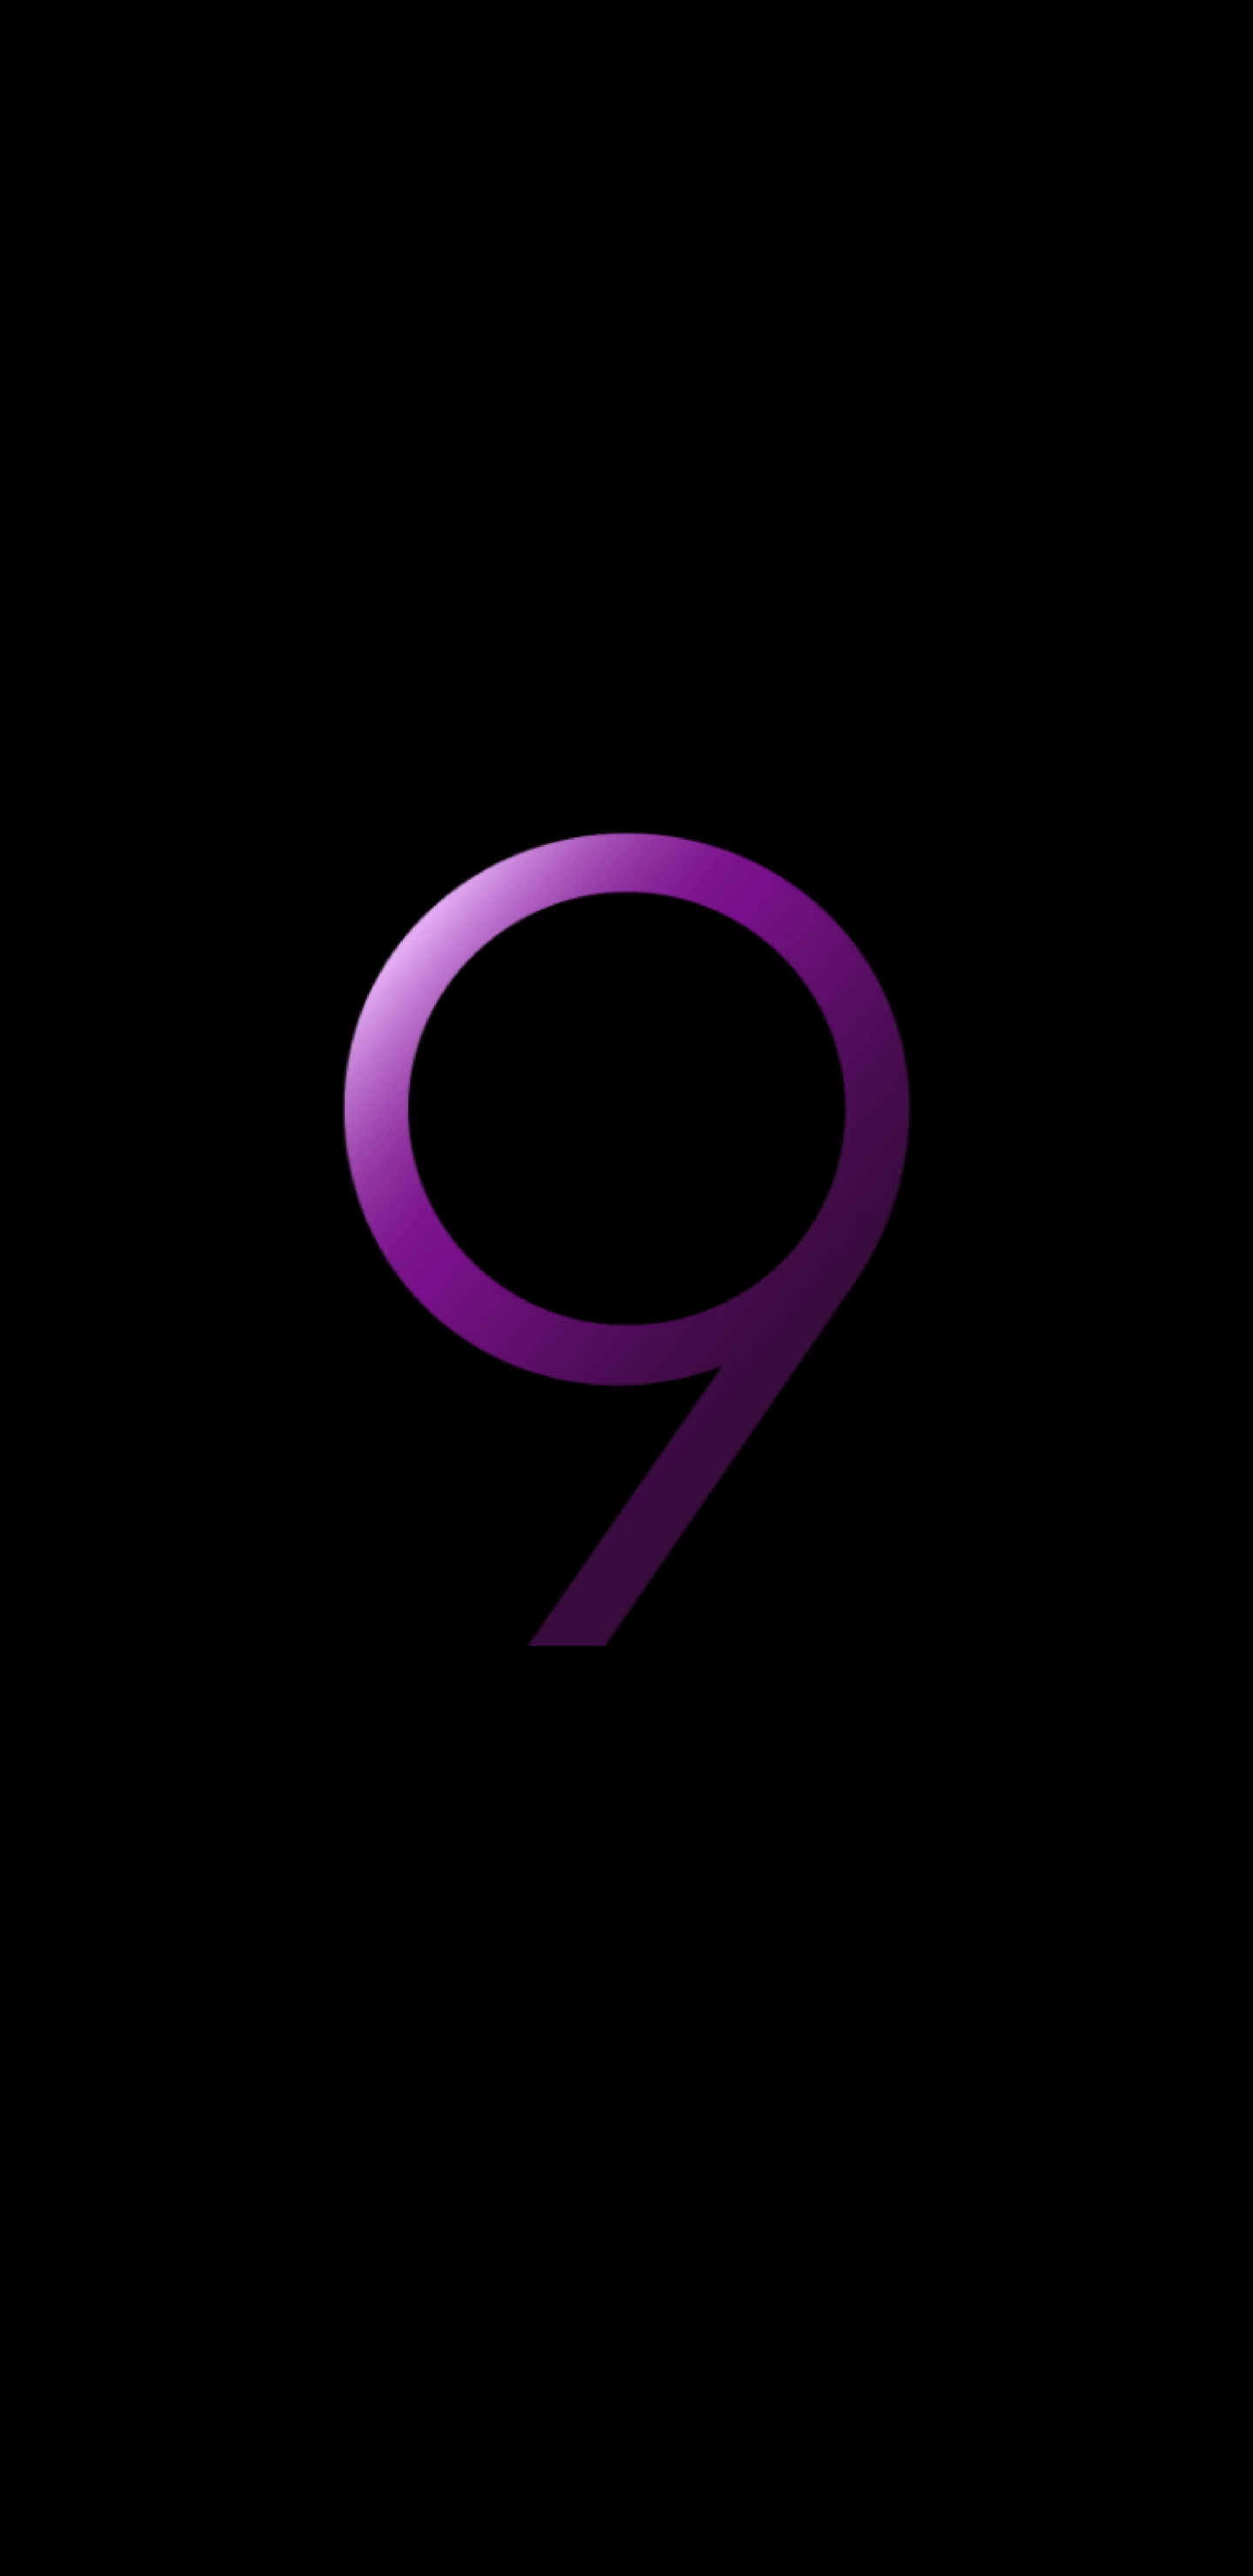 Samsung Galaxy S9 Stock Wallpaper Leaked